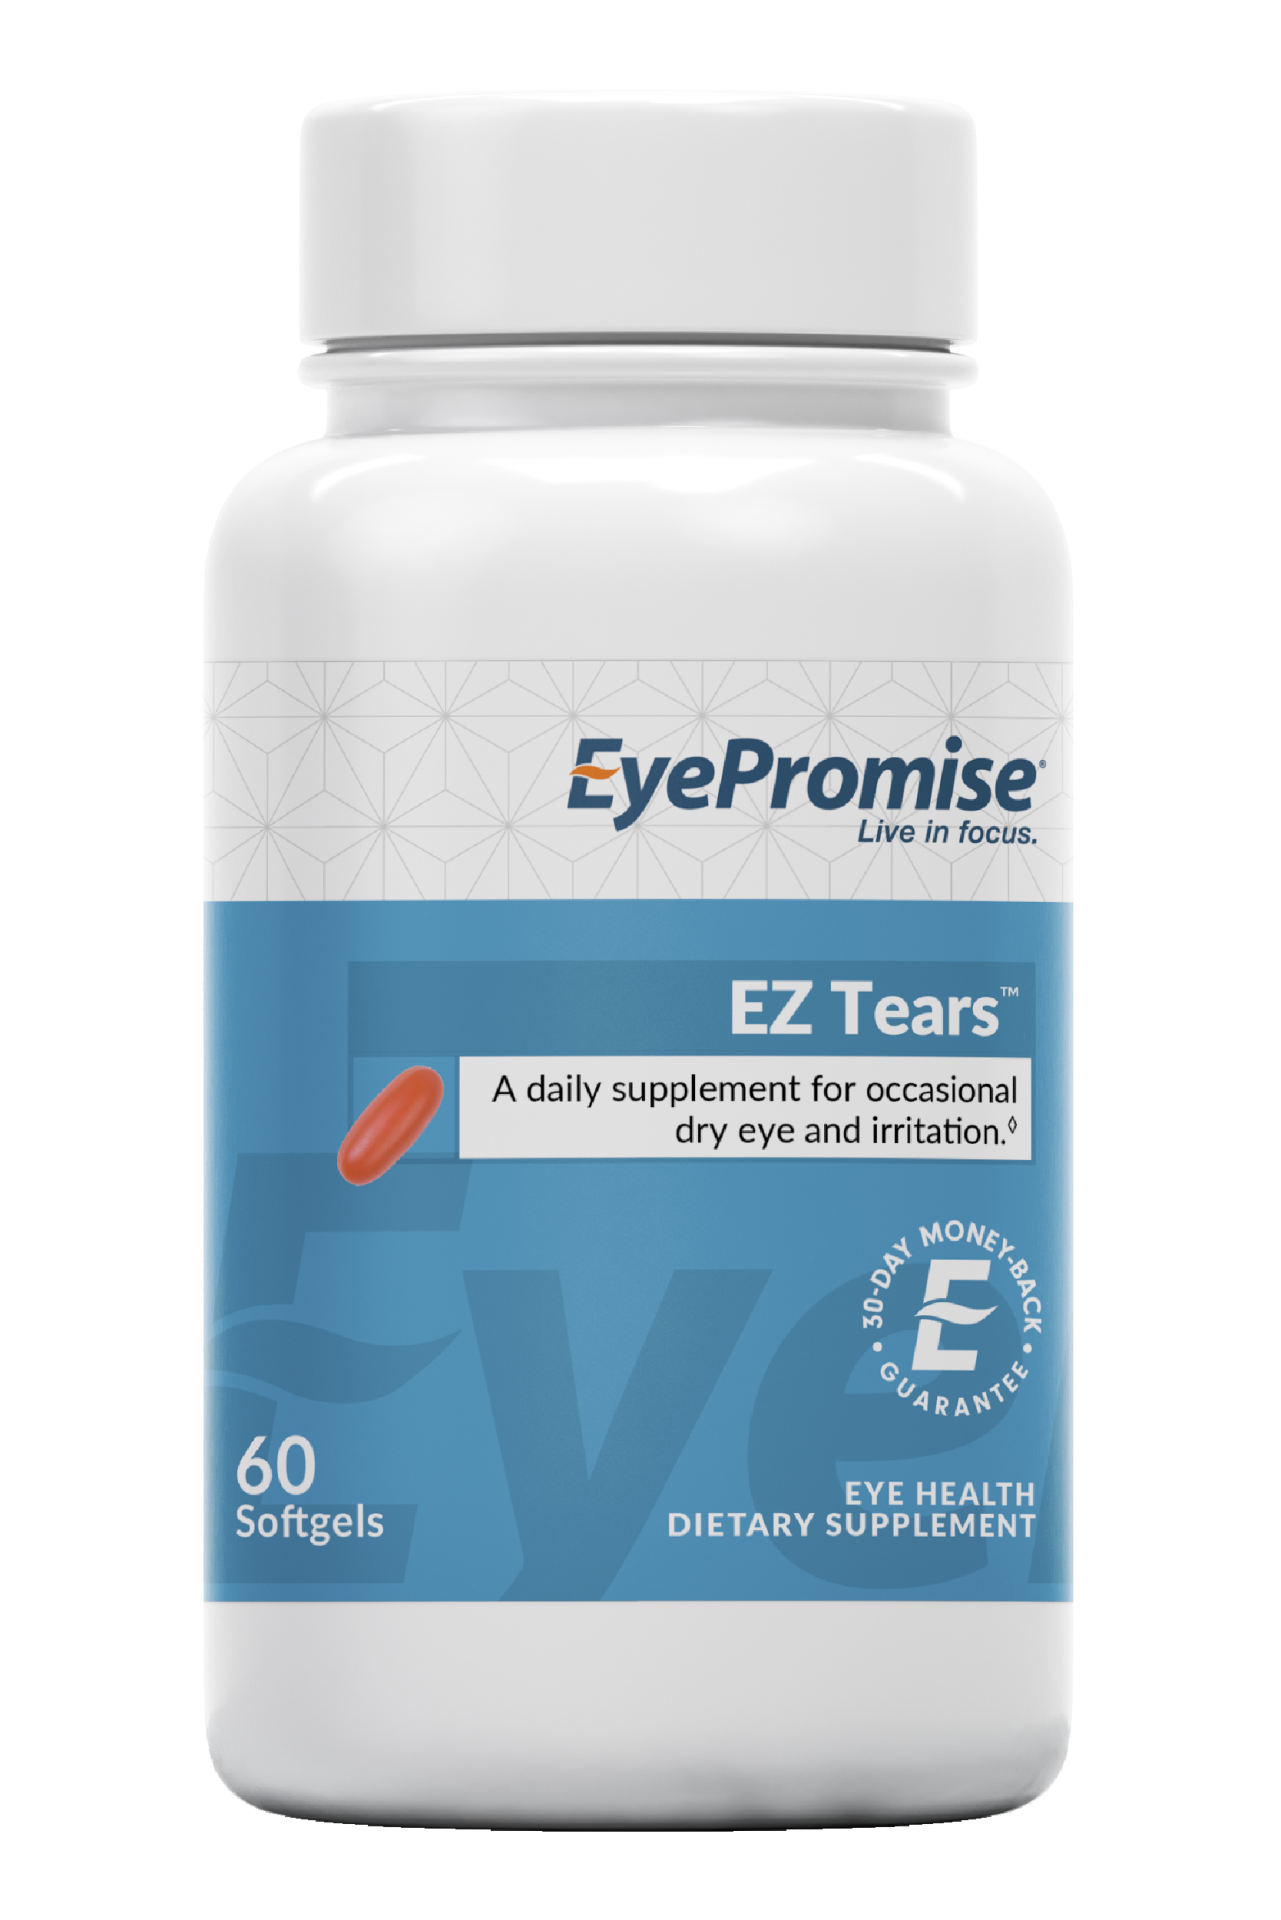 EZ-Tears-Bottle-EyePromise